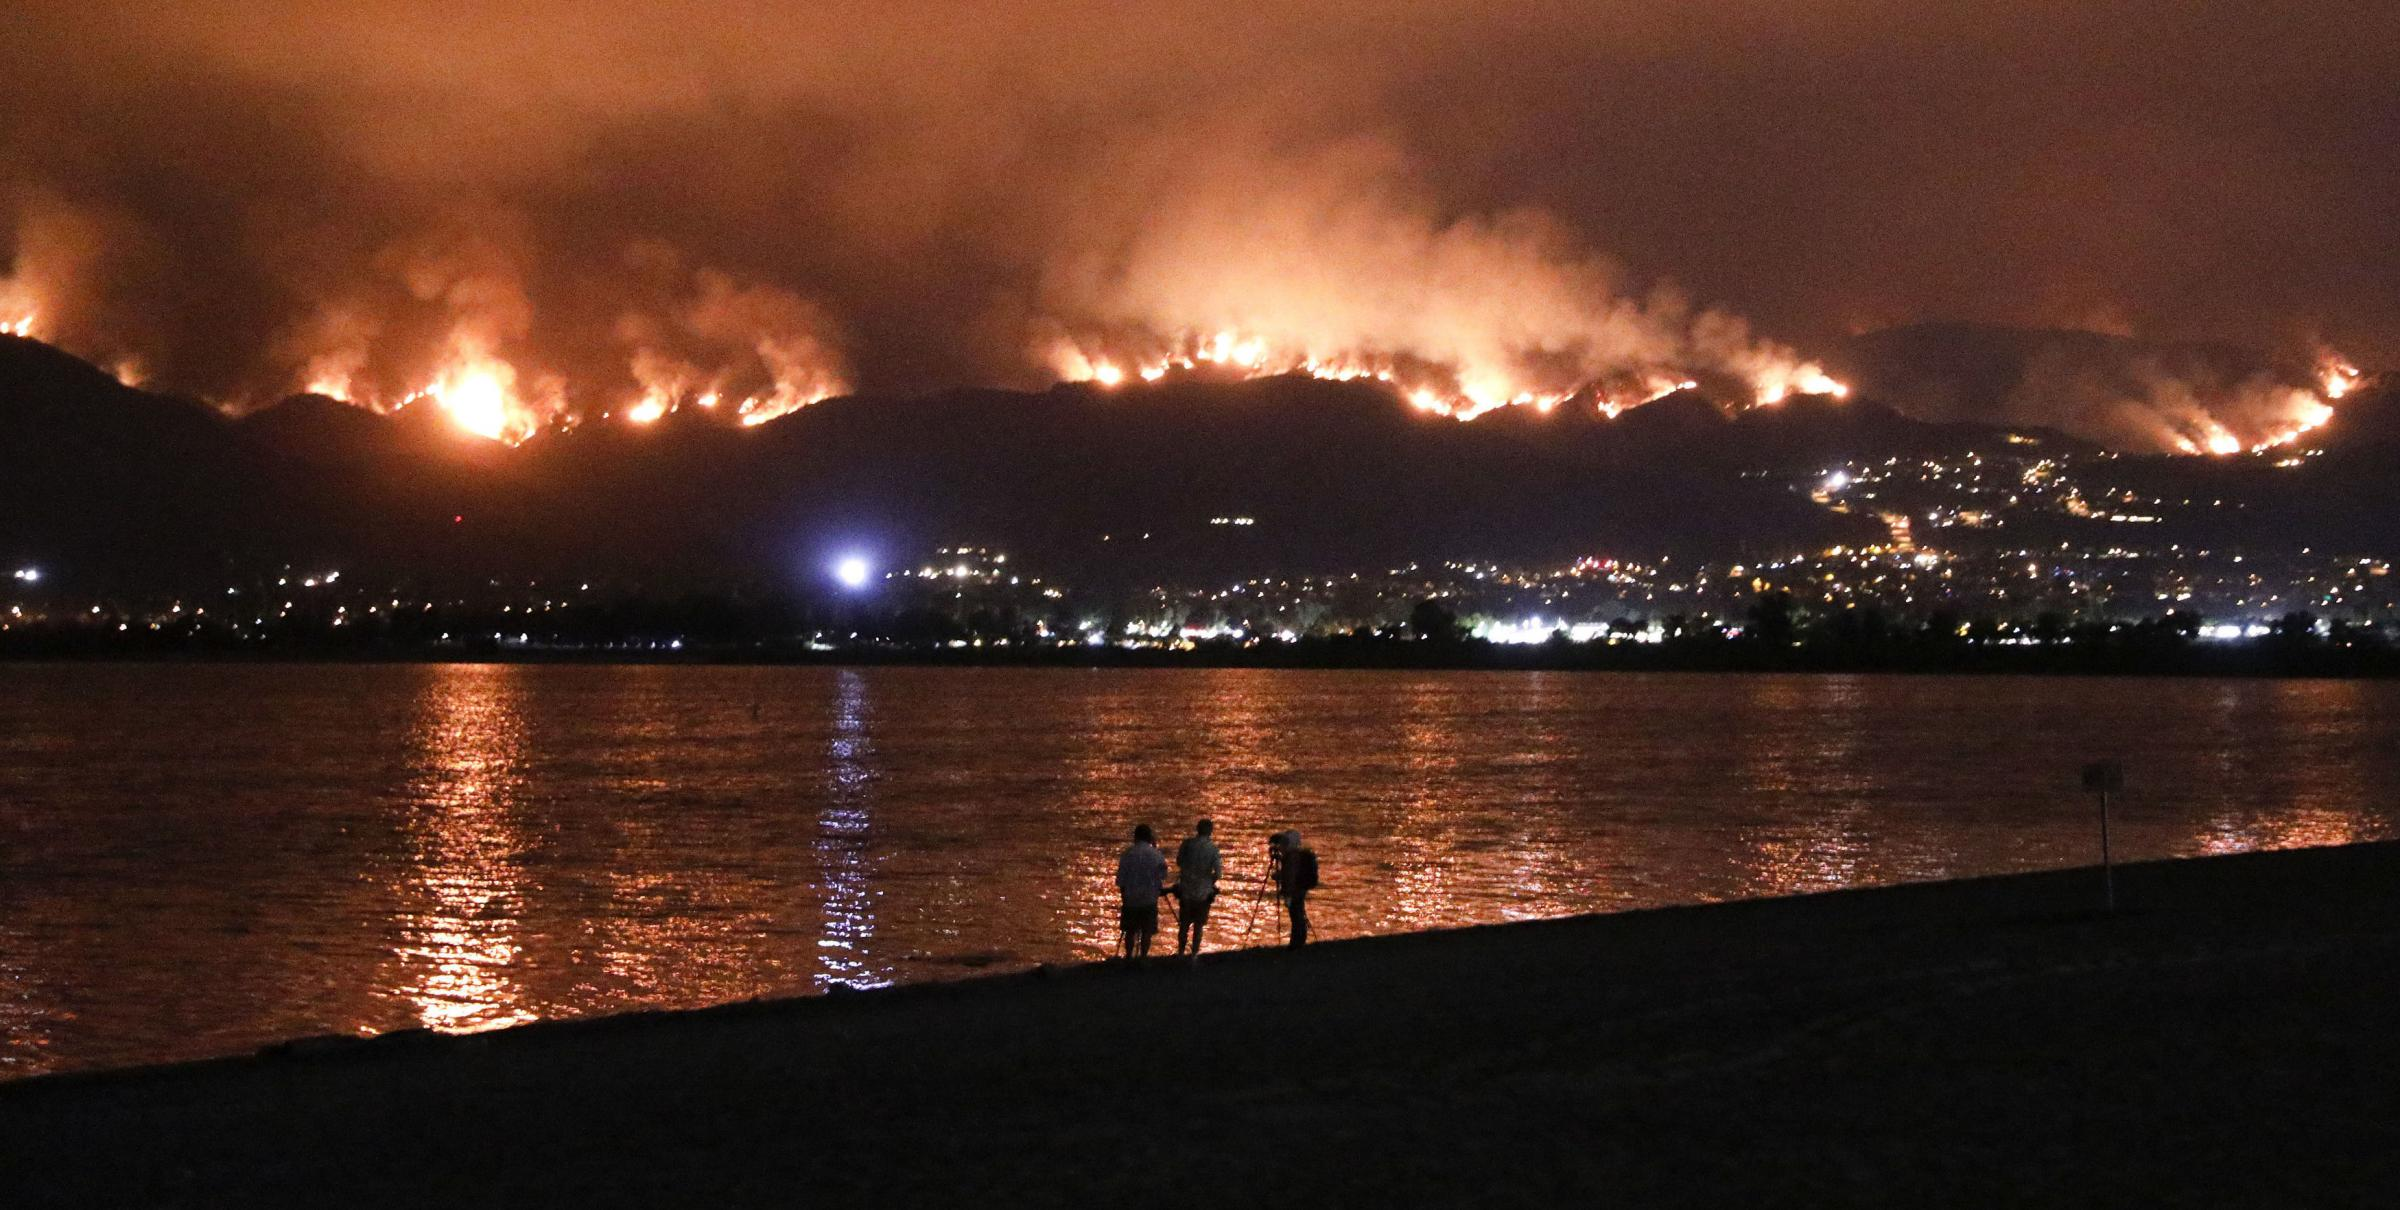 Evacuations have been ordered for several small mountain communities near where the blaze continues to grow. Photograph: AP